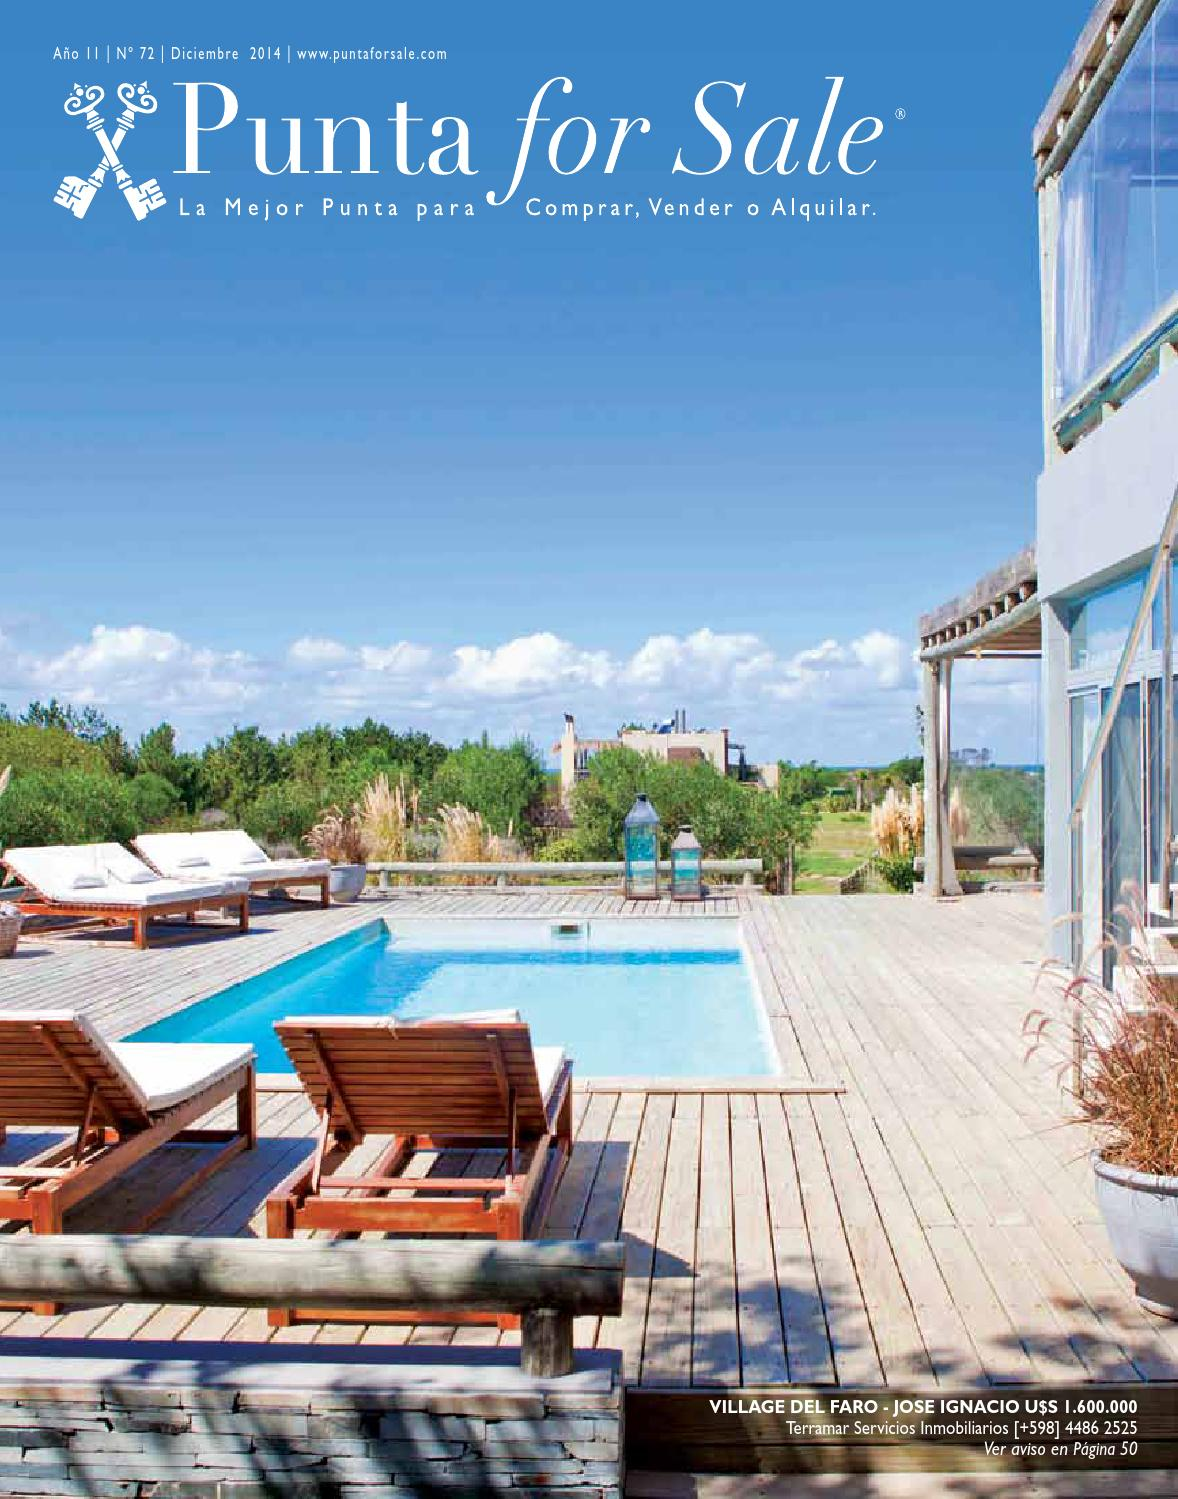 Revista de Real Estate Punta For Sale, edición Diciembre 2014